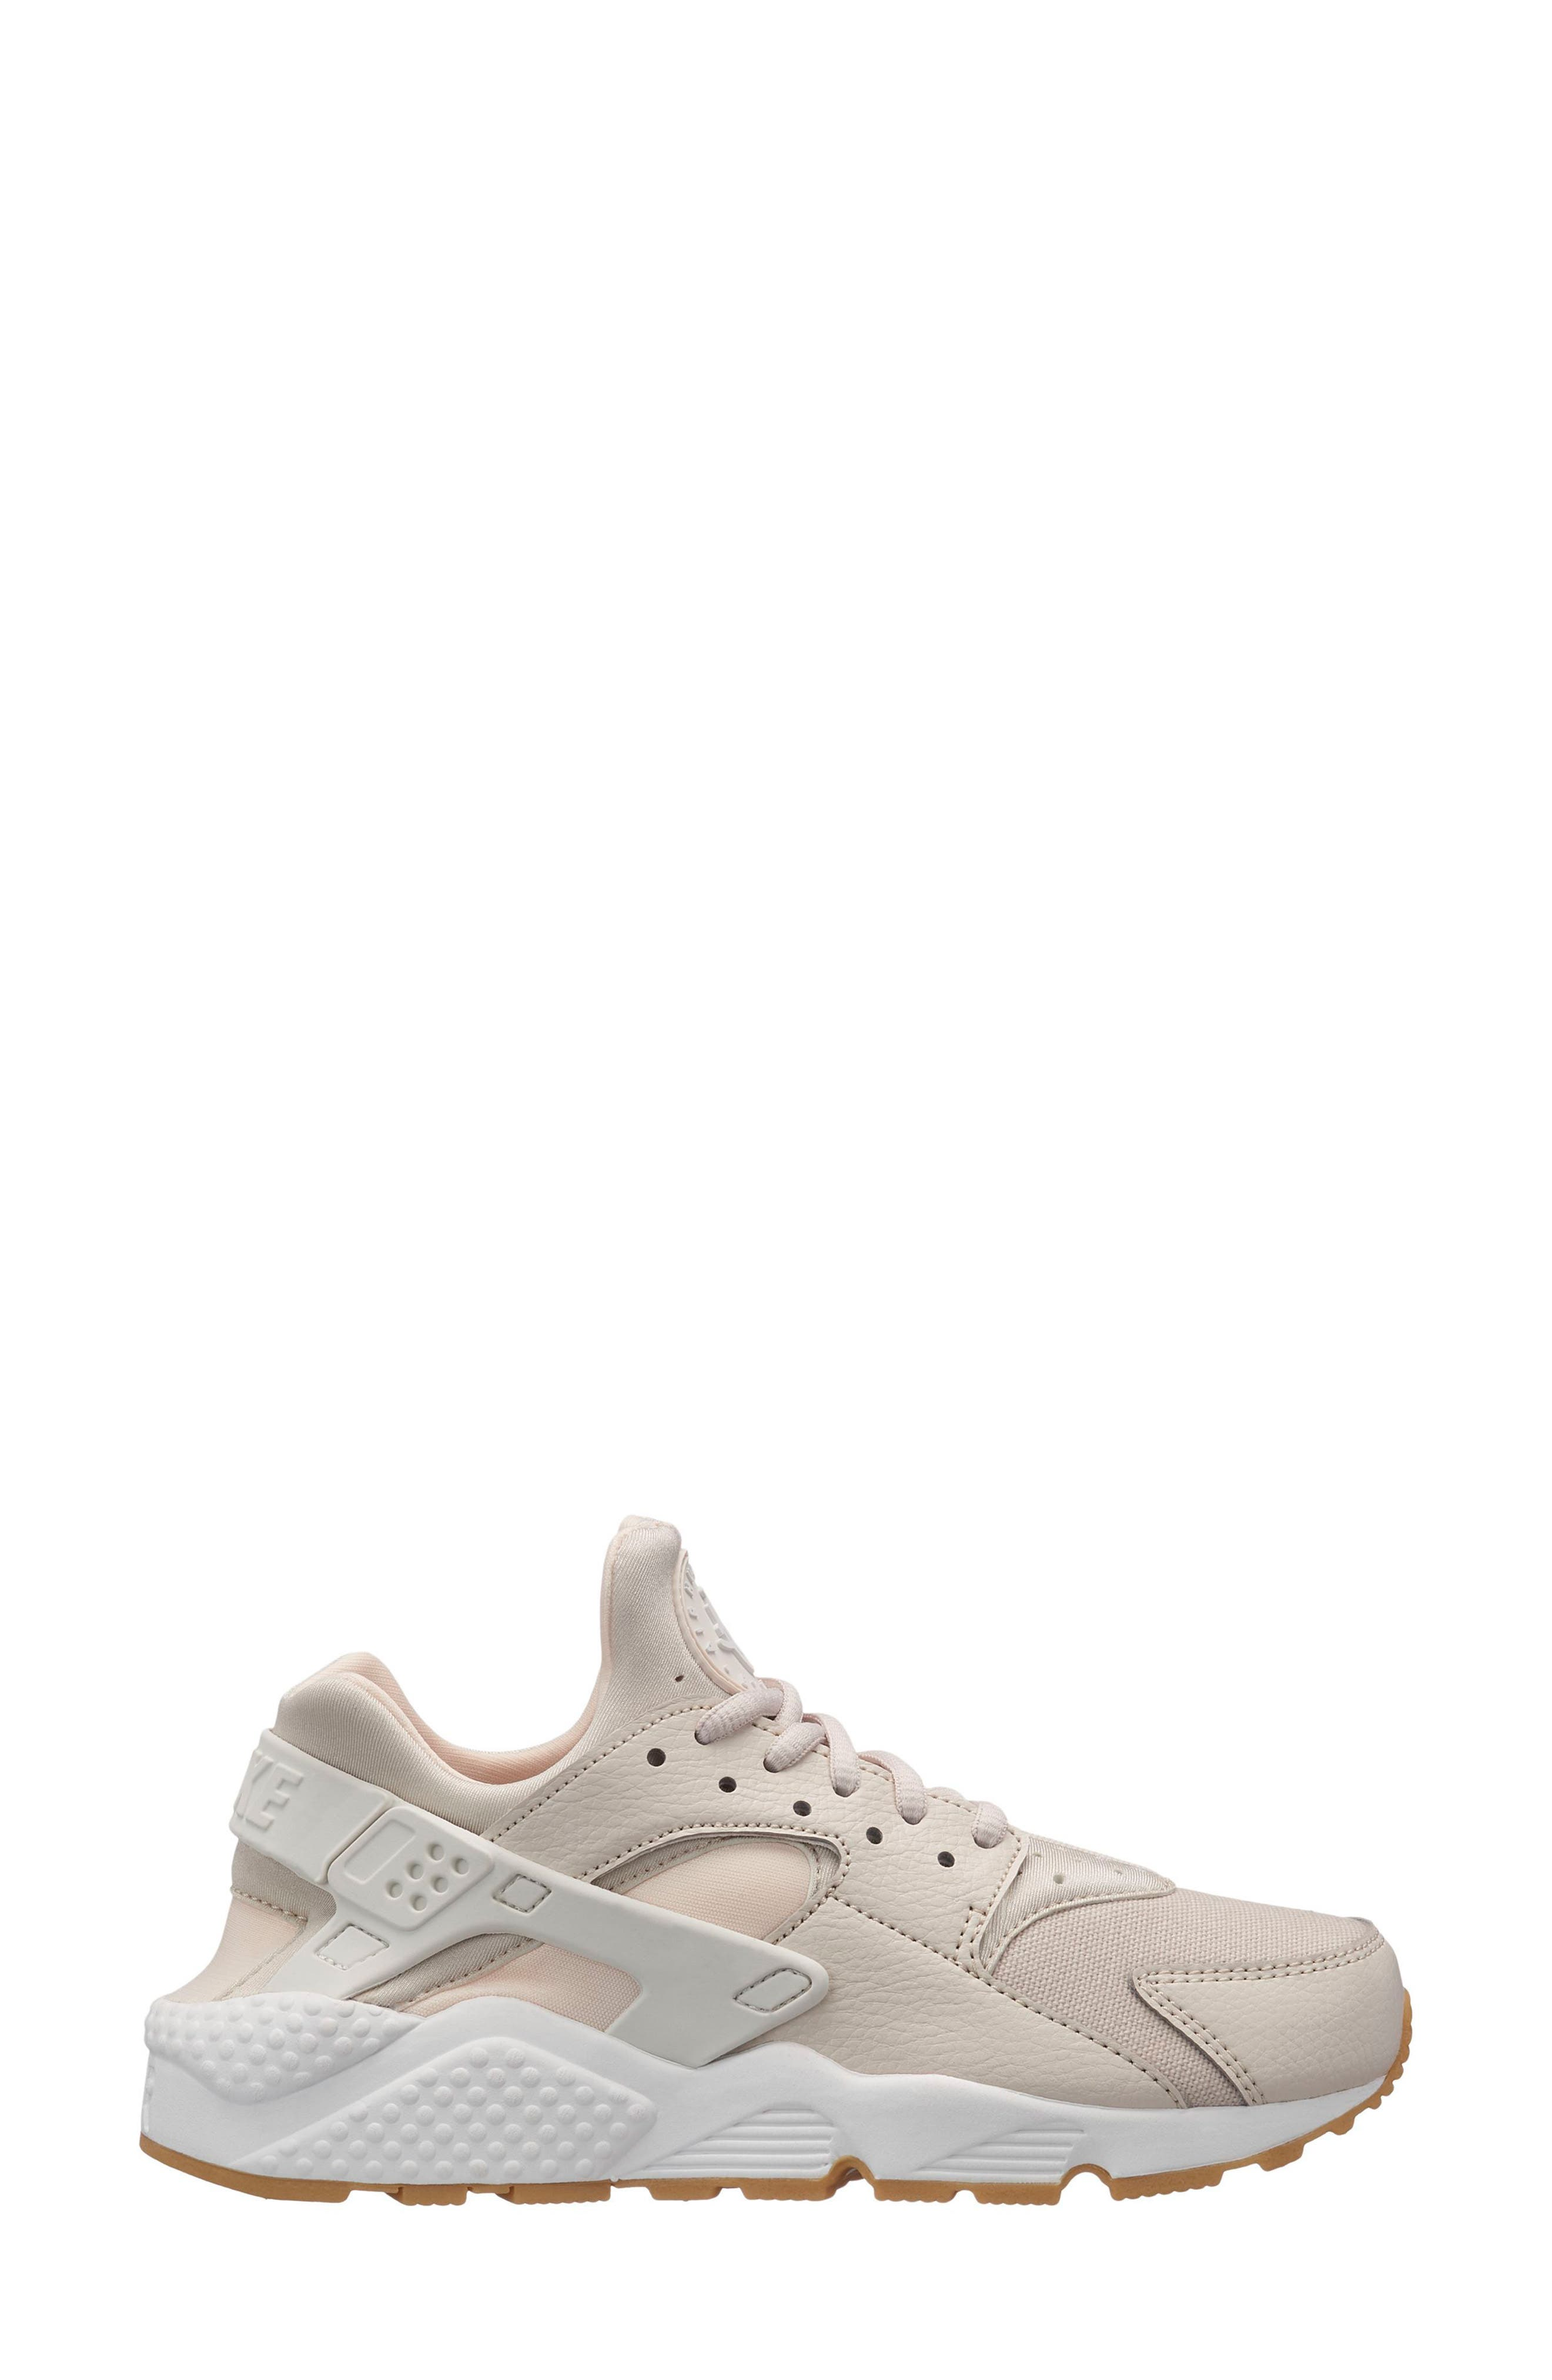 Air Huarache Run Sneaker,                             Main thumbnail 1, color,                             GREY